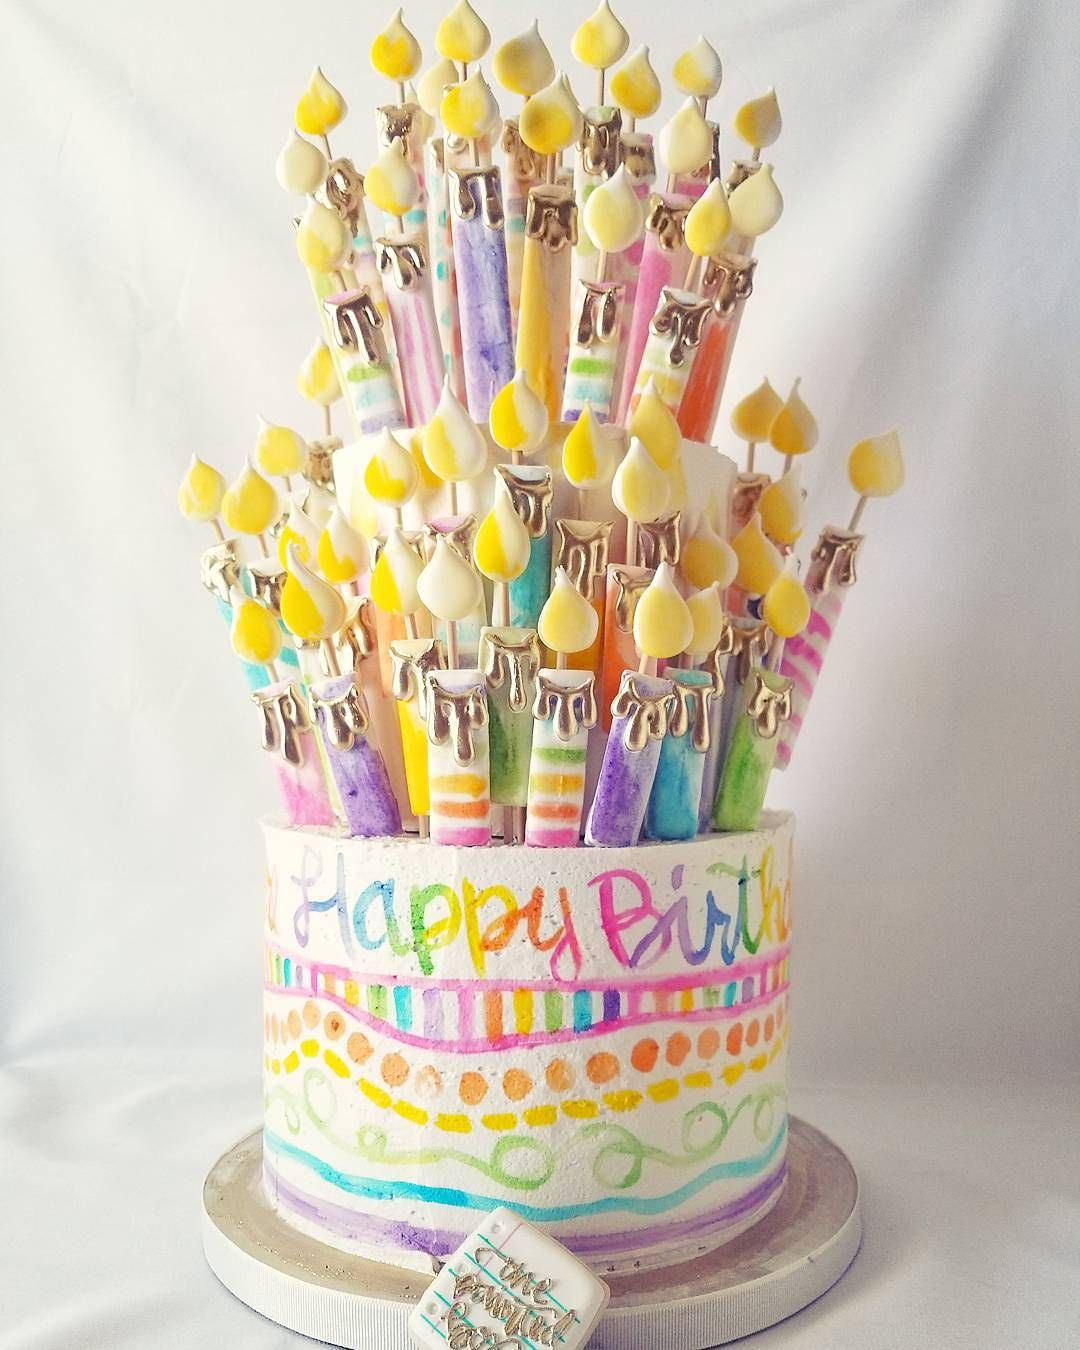 Pin by Sarah Haney on cakes Birthday cakes for women